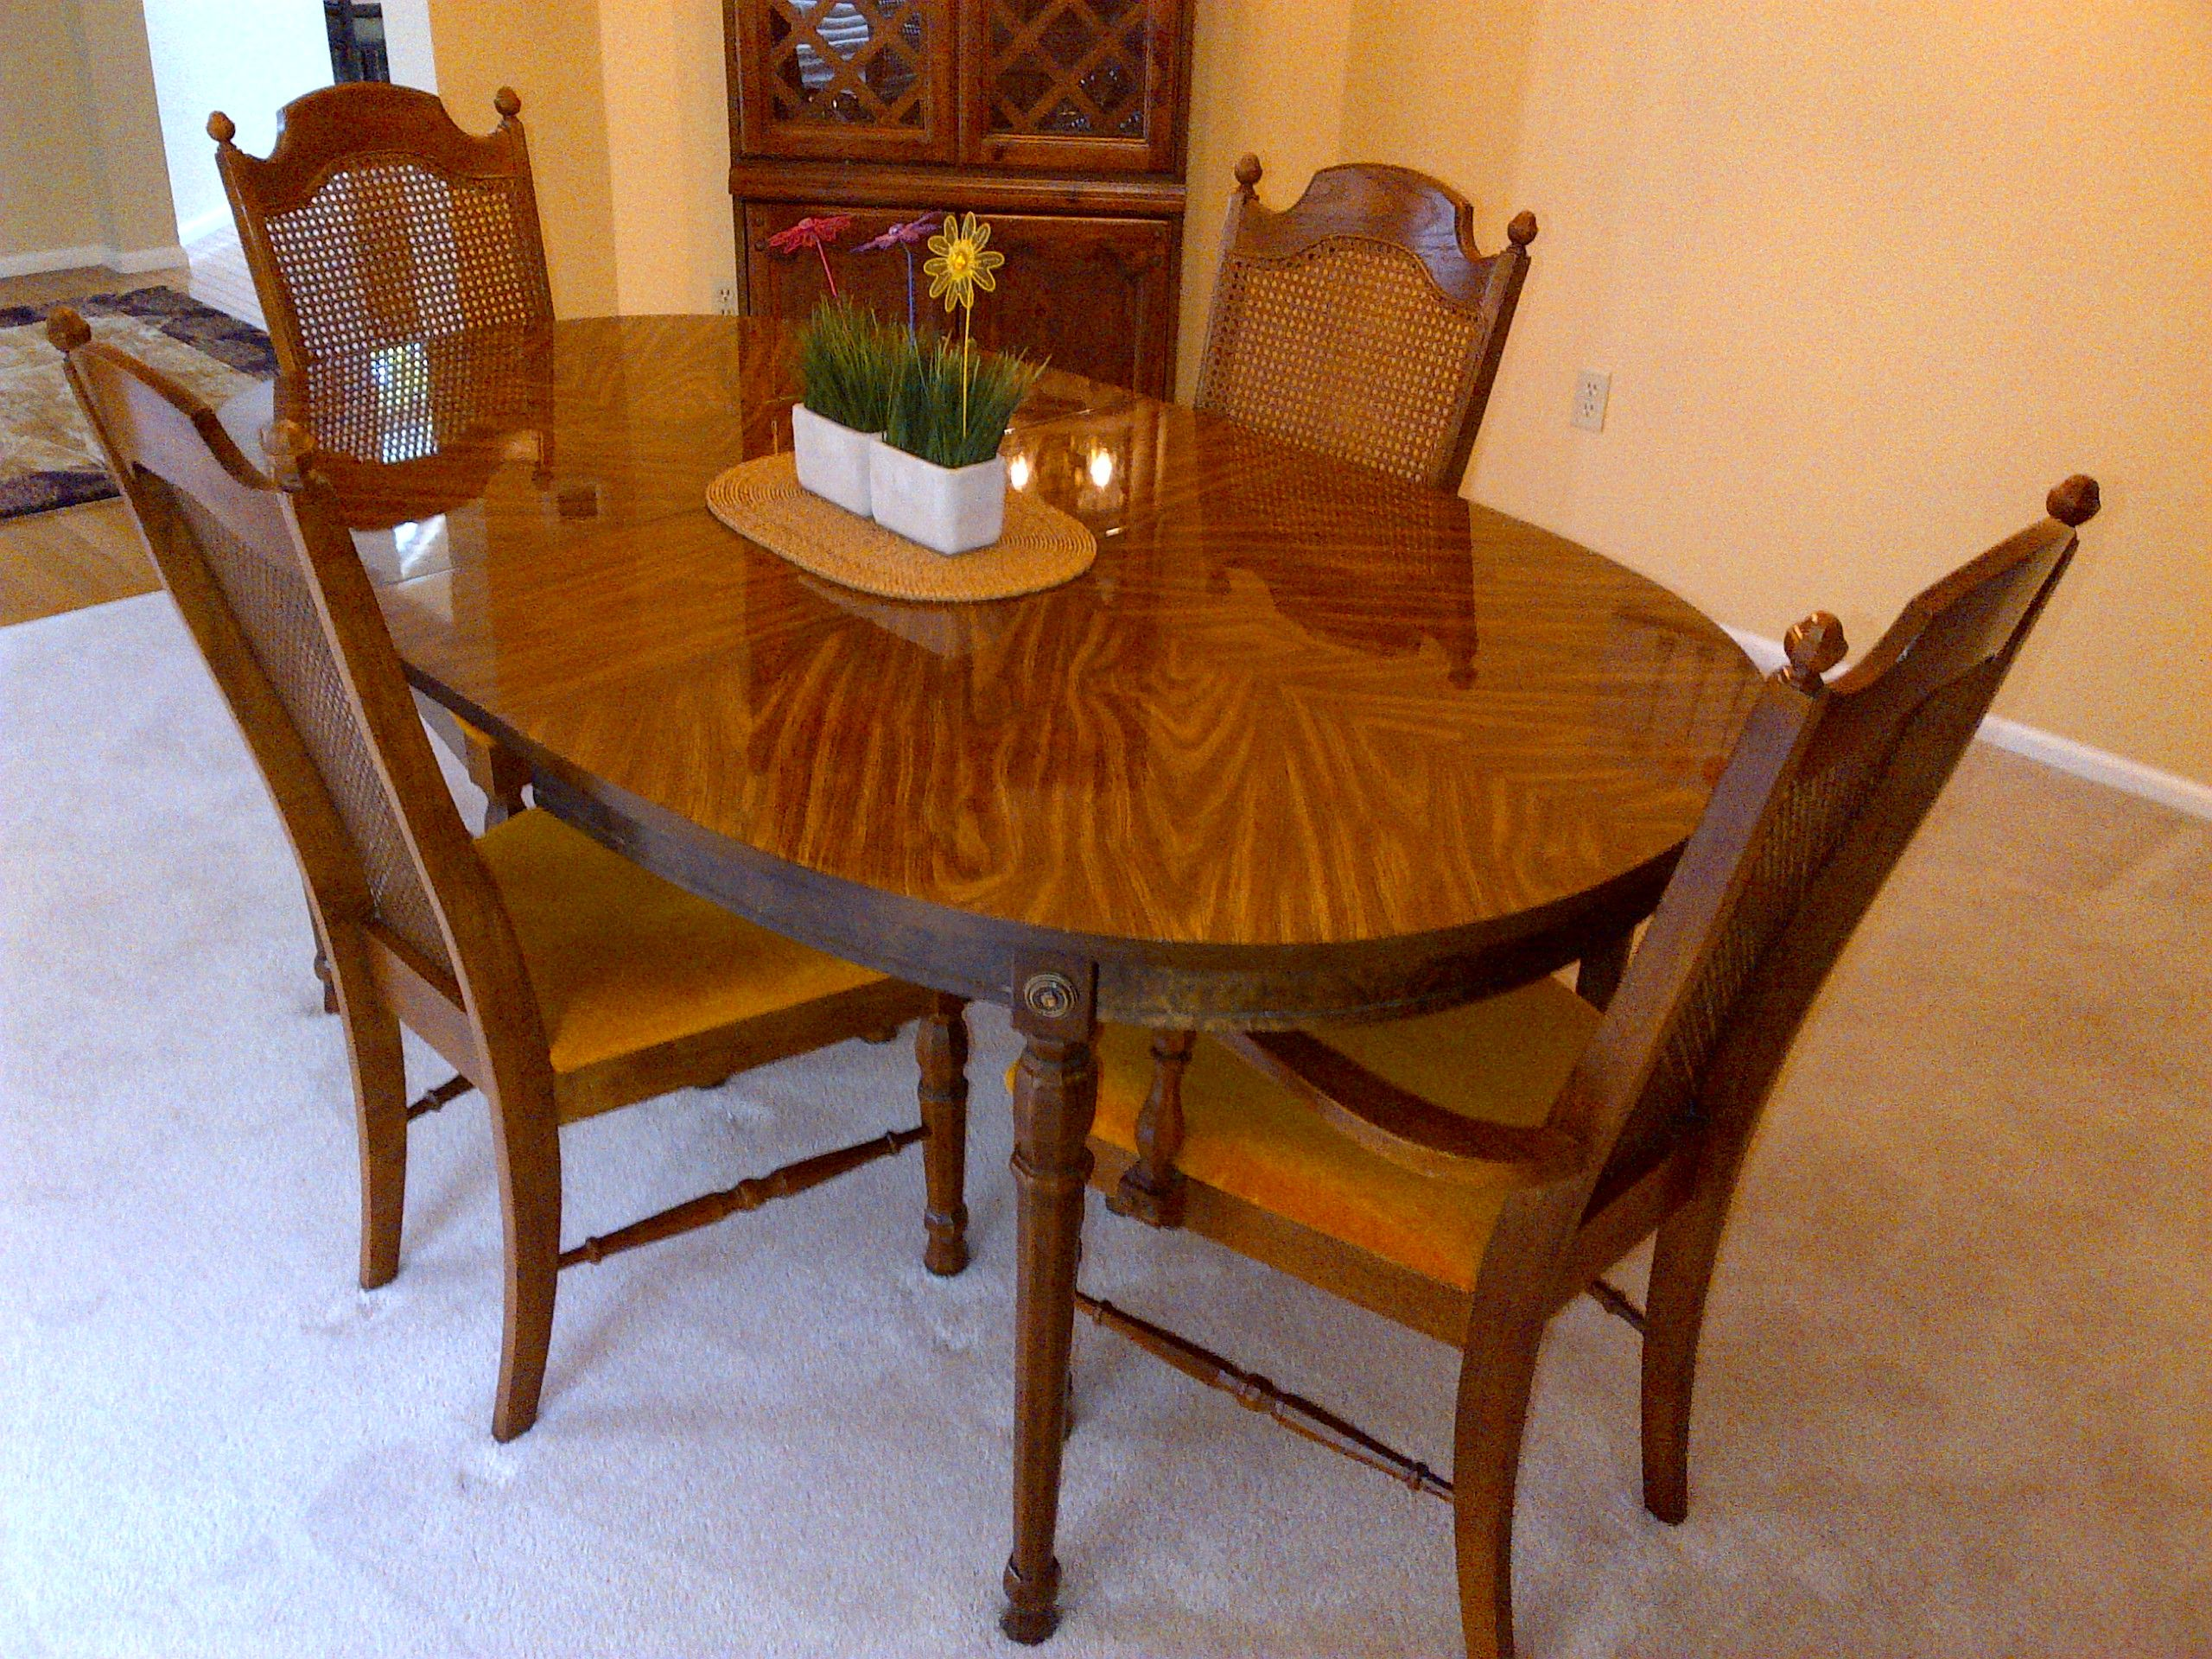 Cardboard Sofa New Leaf Bed Double Size Philippines Dining Room Table And Chairs In Oarkahuna 39s Garage Sale